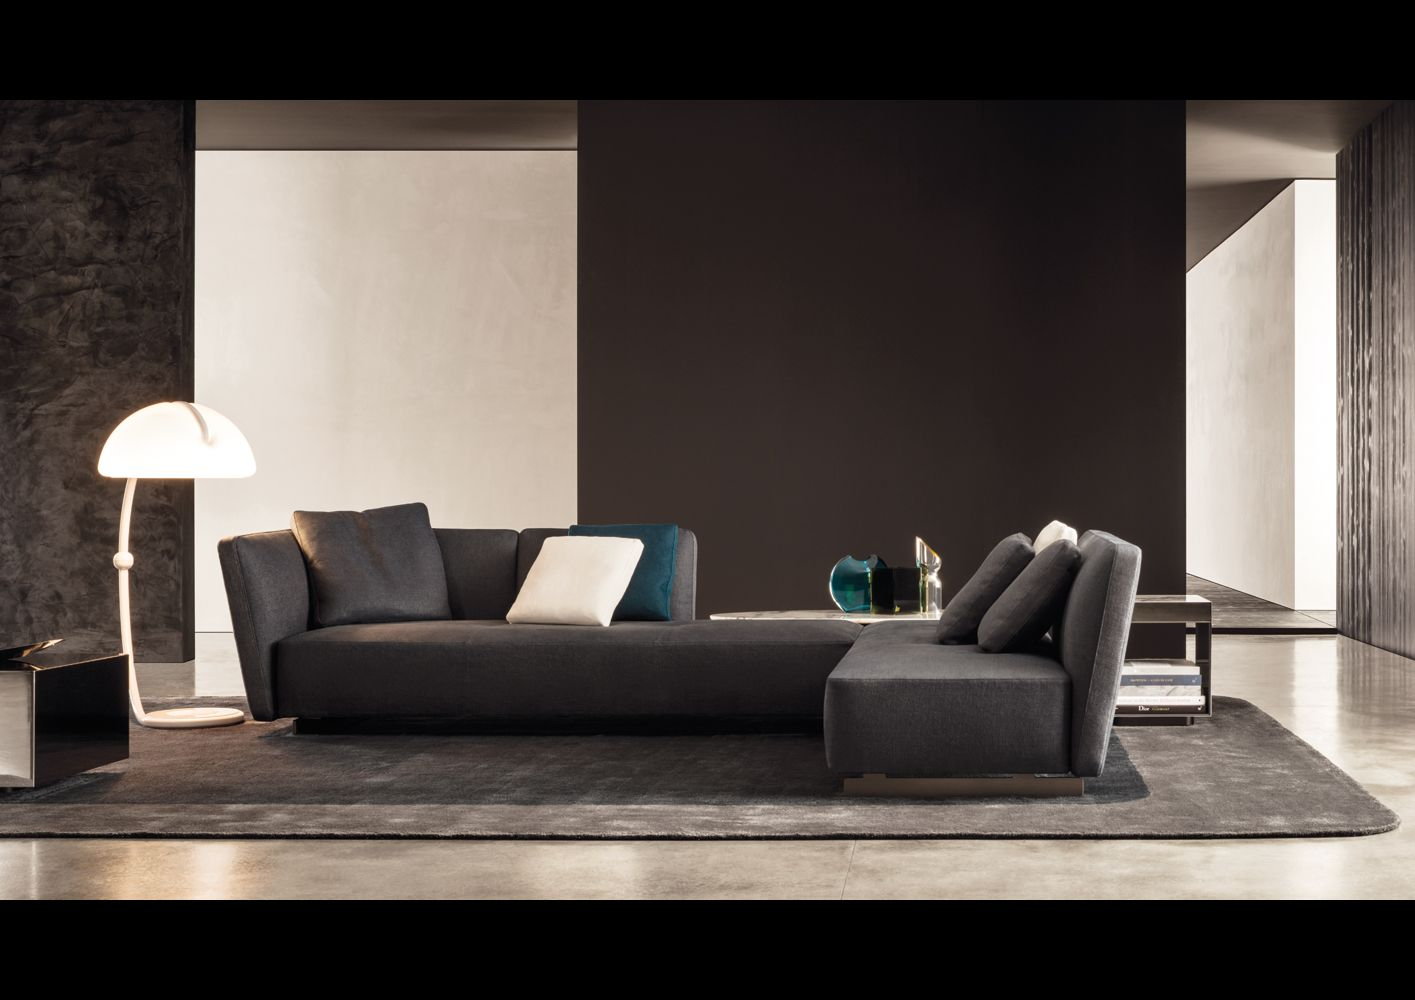 Loungeseymour 15 Jpg 1415 1000 Lounge Seating Minotti Seating